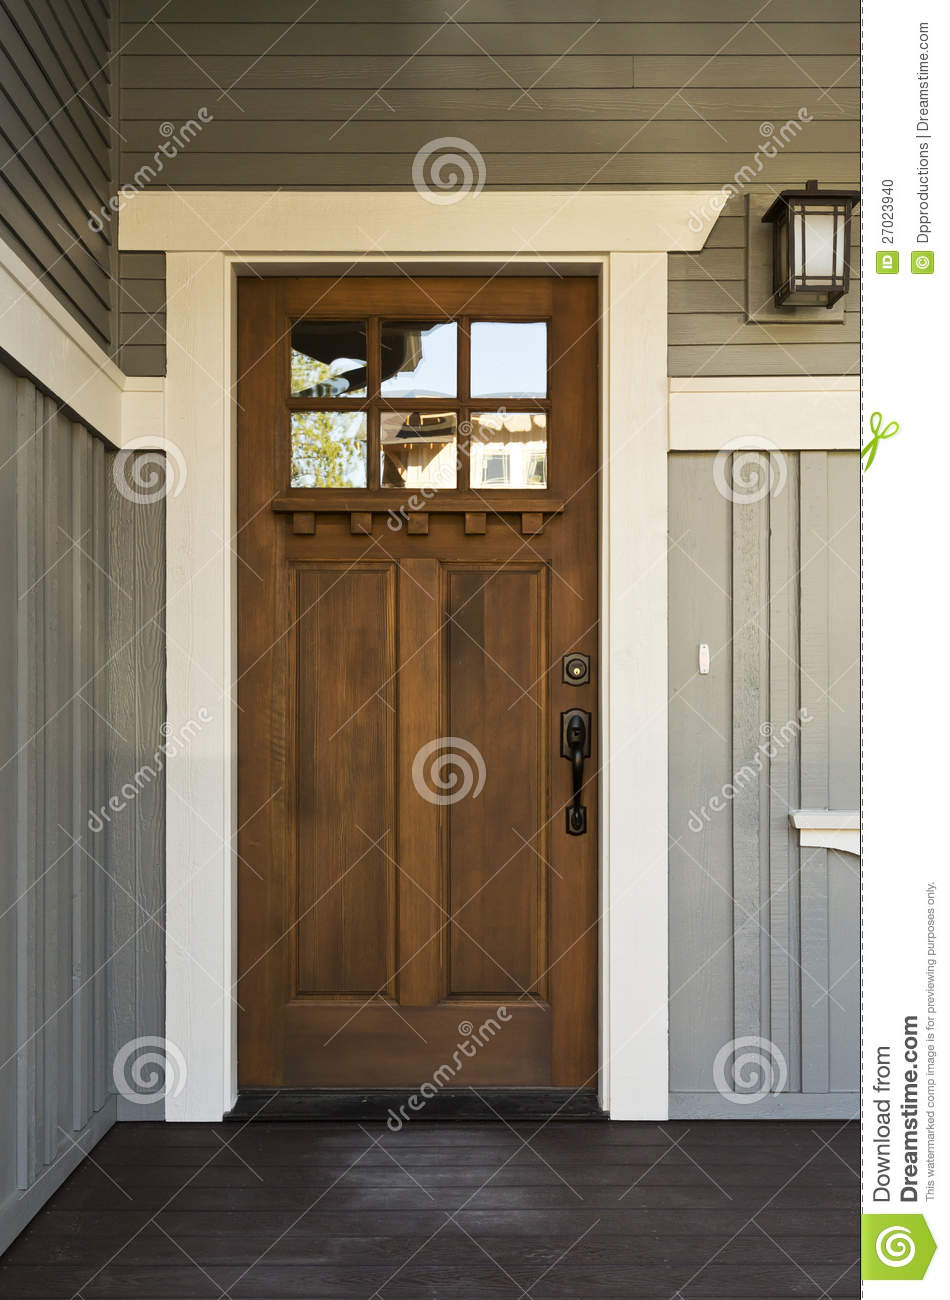 Stock Photo Dark Wood Front Door Home Image27023940 on Iron Entrance Gates Designs